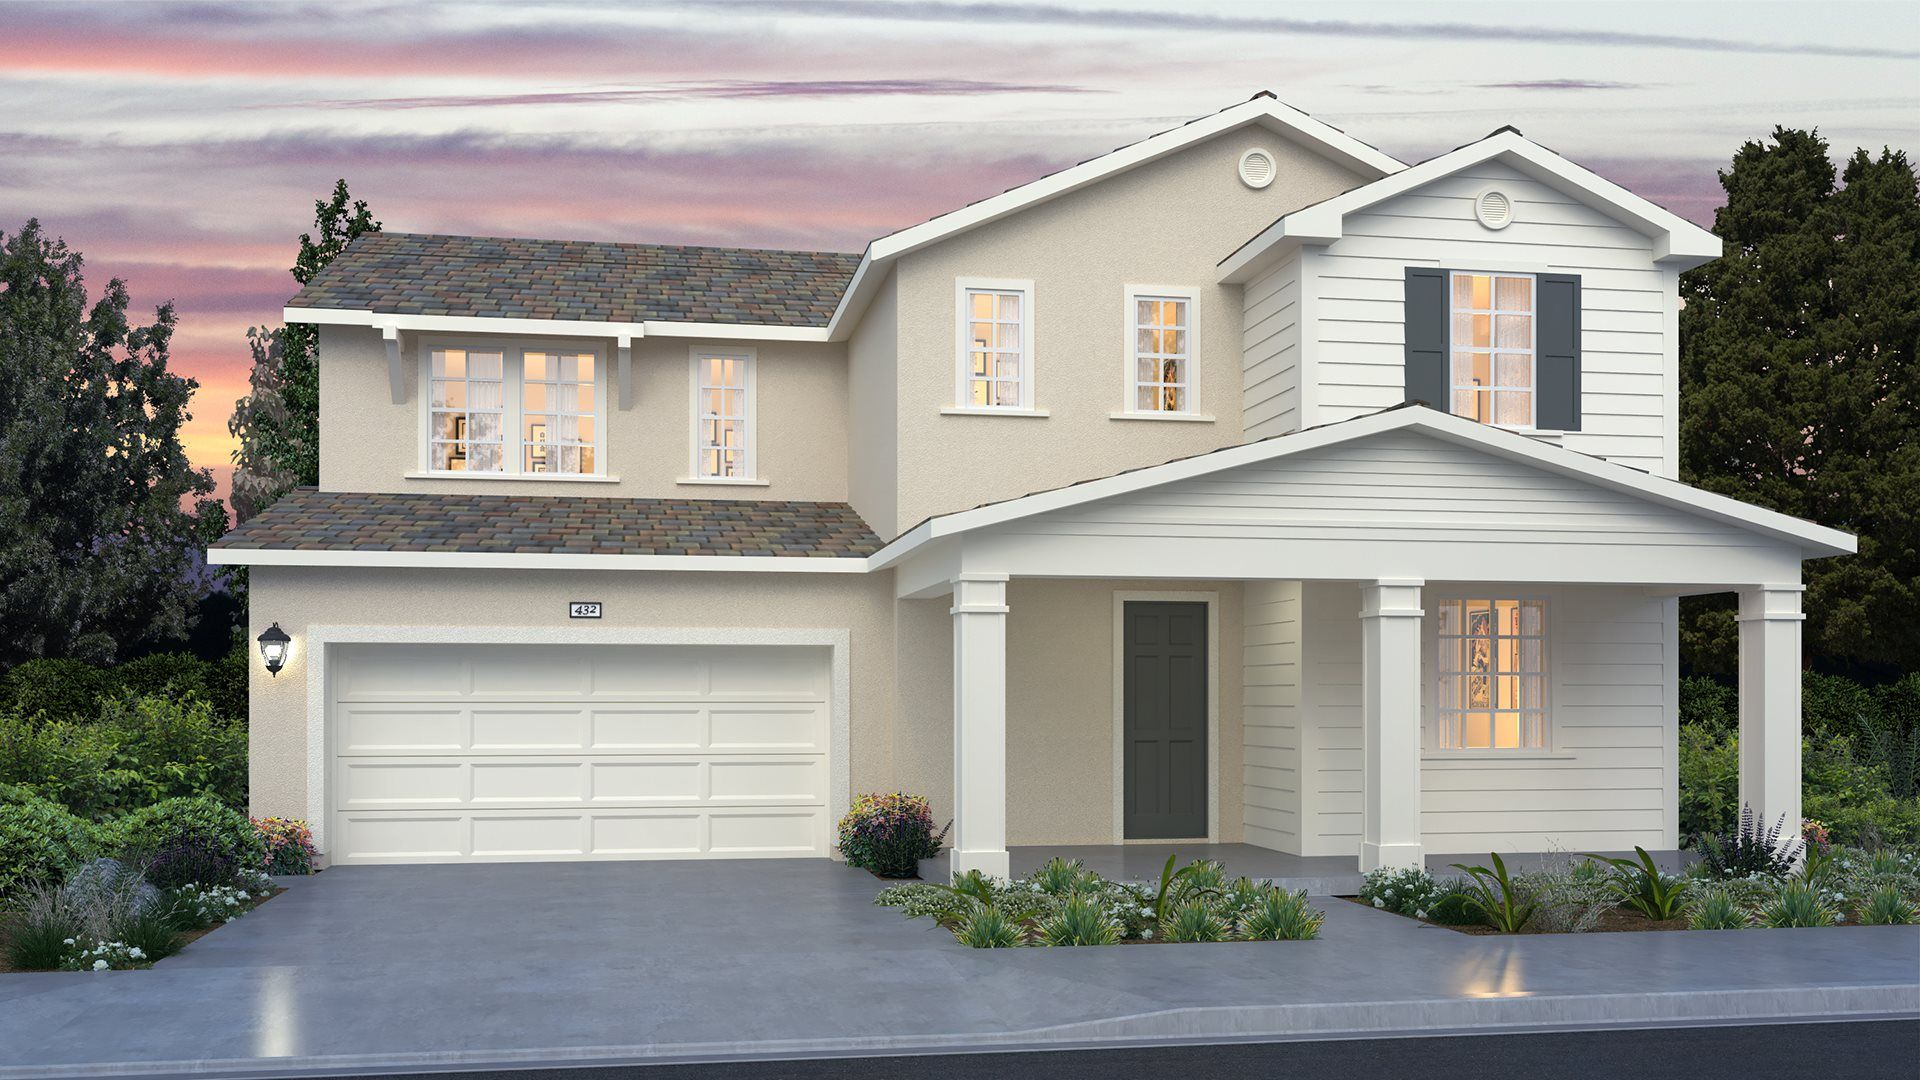 Everly at Parklane - 3339 Next Gen by Lennar C Ext